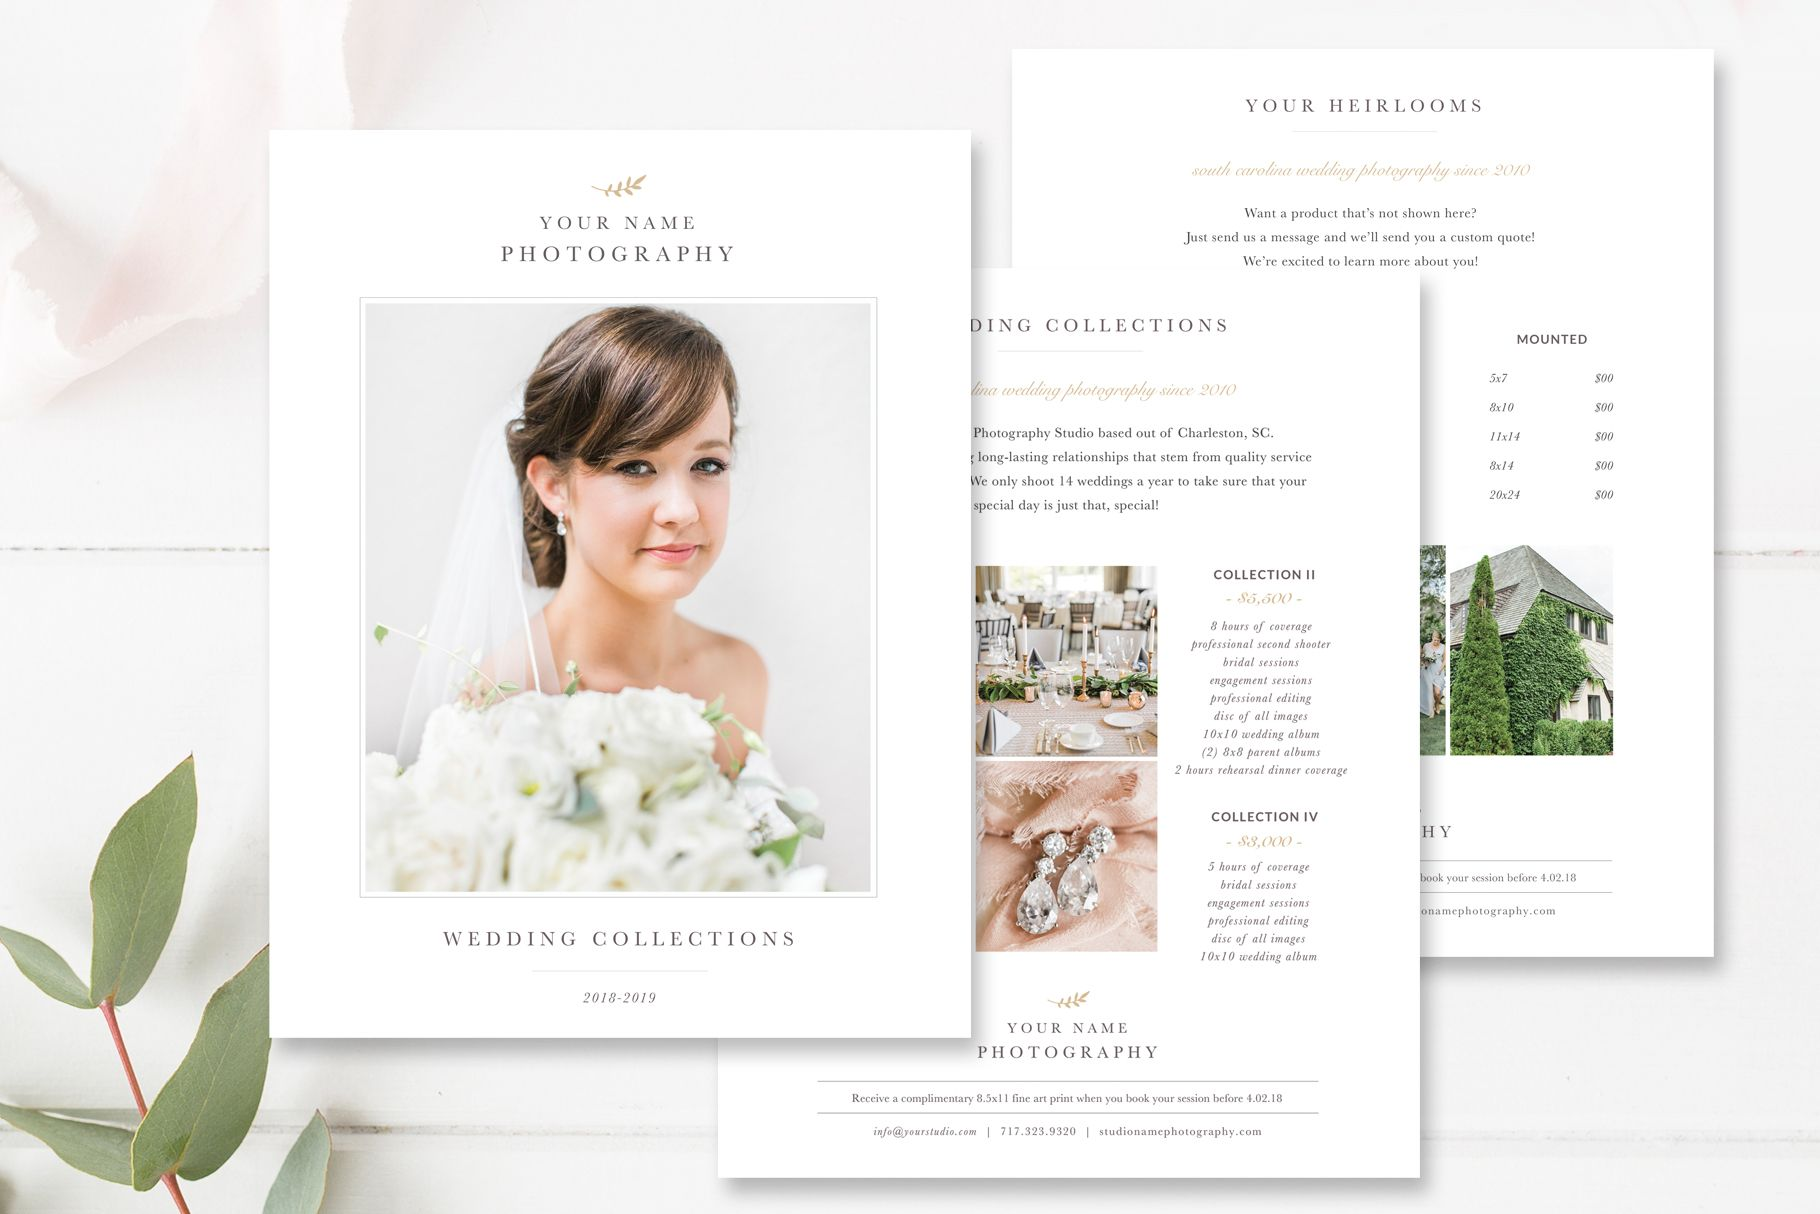 images?q=tbn:ANd9GcQh_l3eQ5xwiPy07kGEXjmjgmBKBRB7H2mRxCGhv1tFWg5c_mWT Ideas For Wedding Photography List Template @capturingmomentsphotography.net